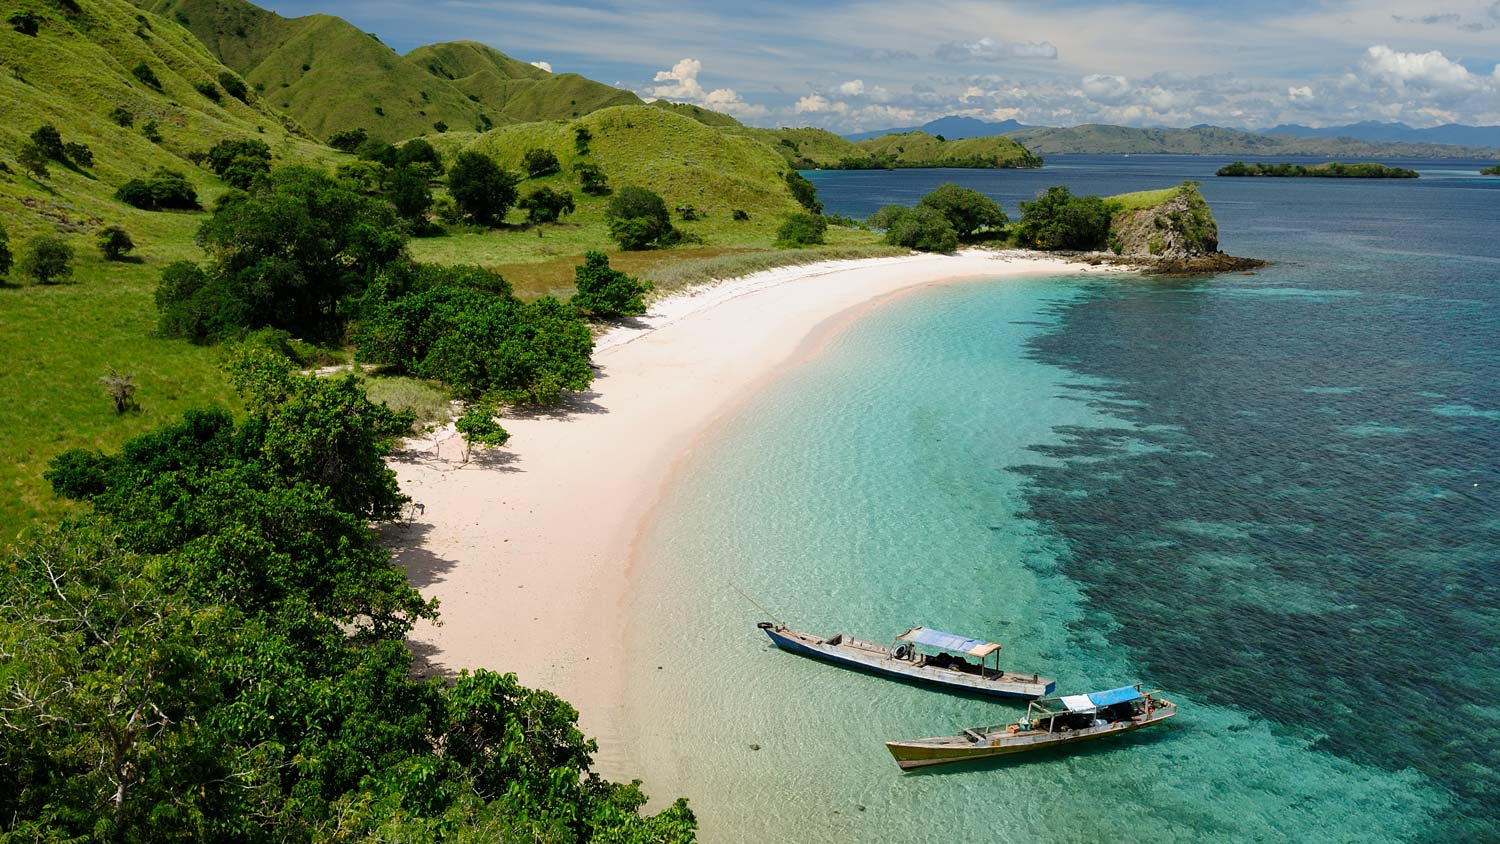 Komodo-National-Park-beach.jpg